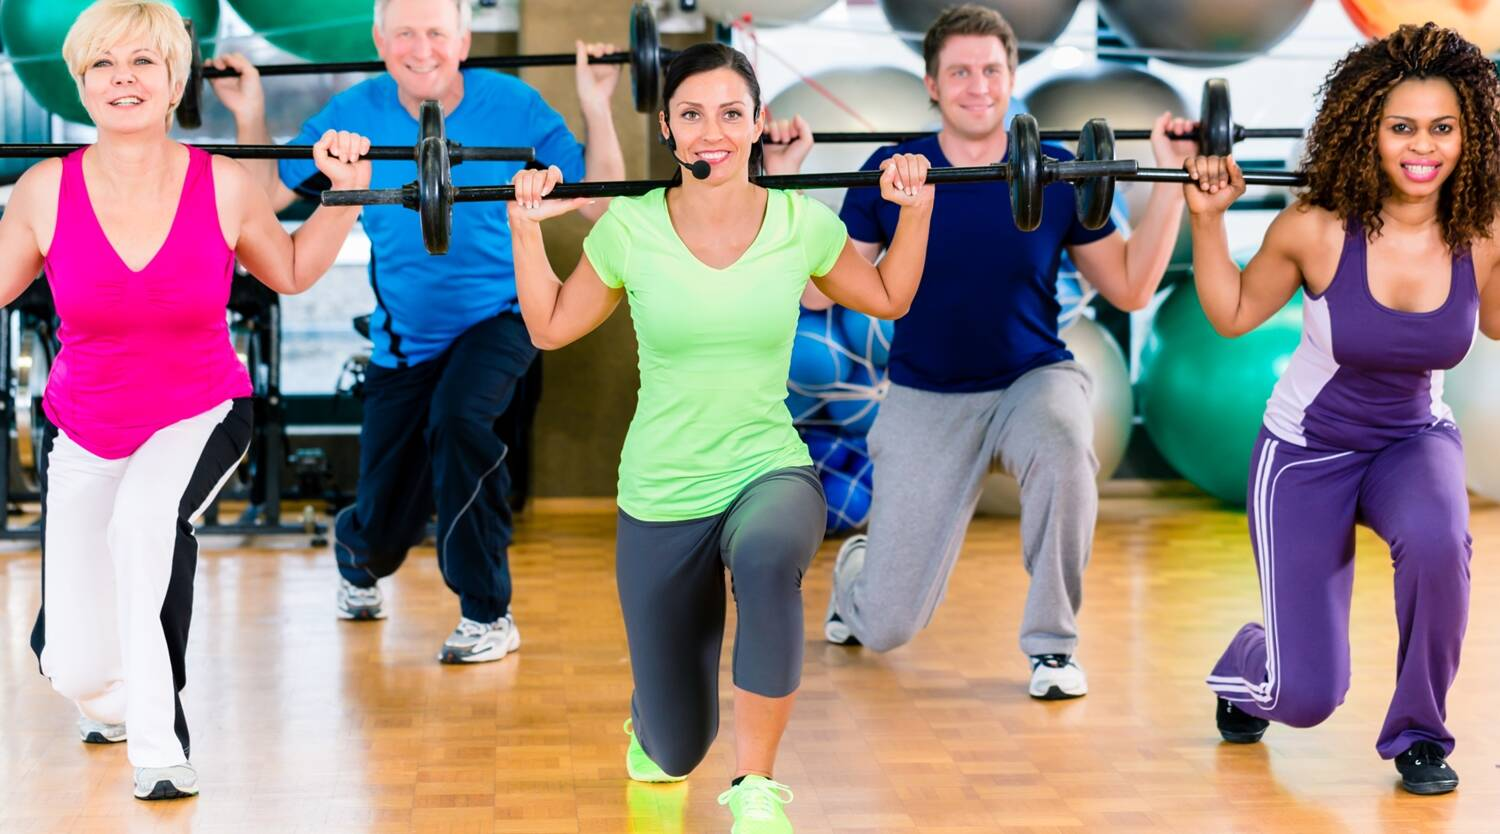 Men and women lifting barbell in gym